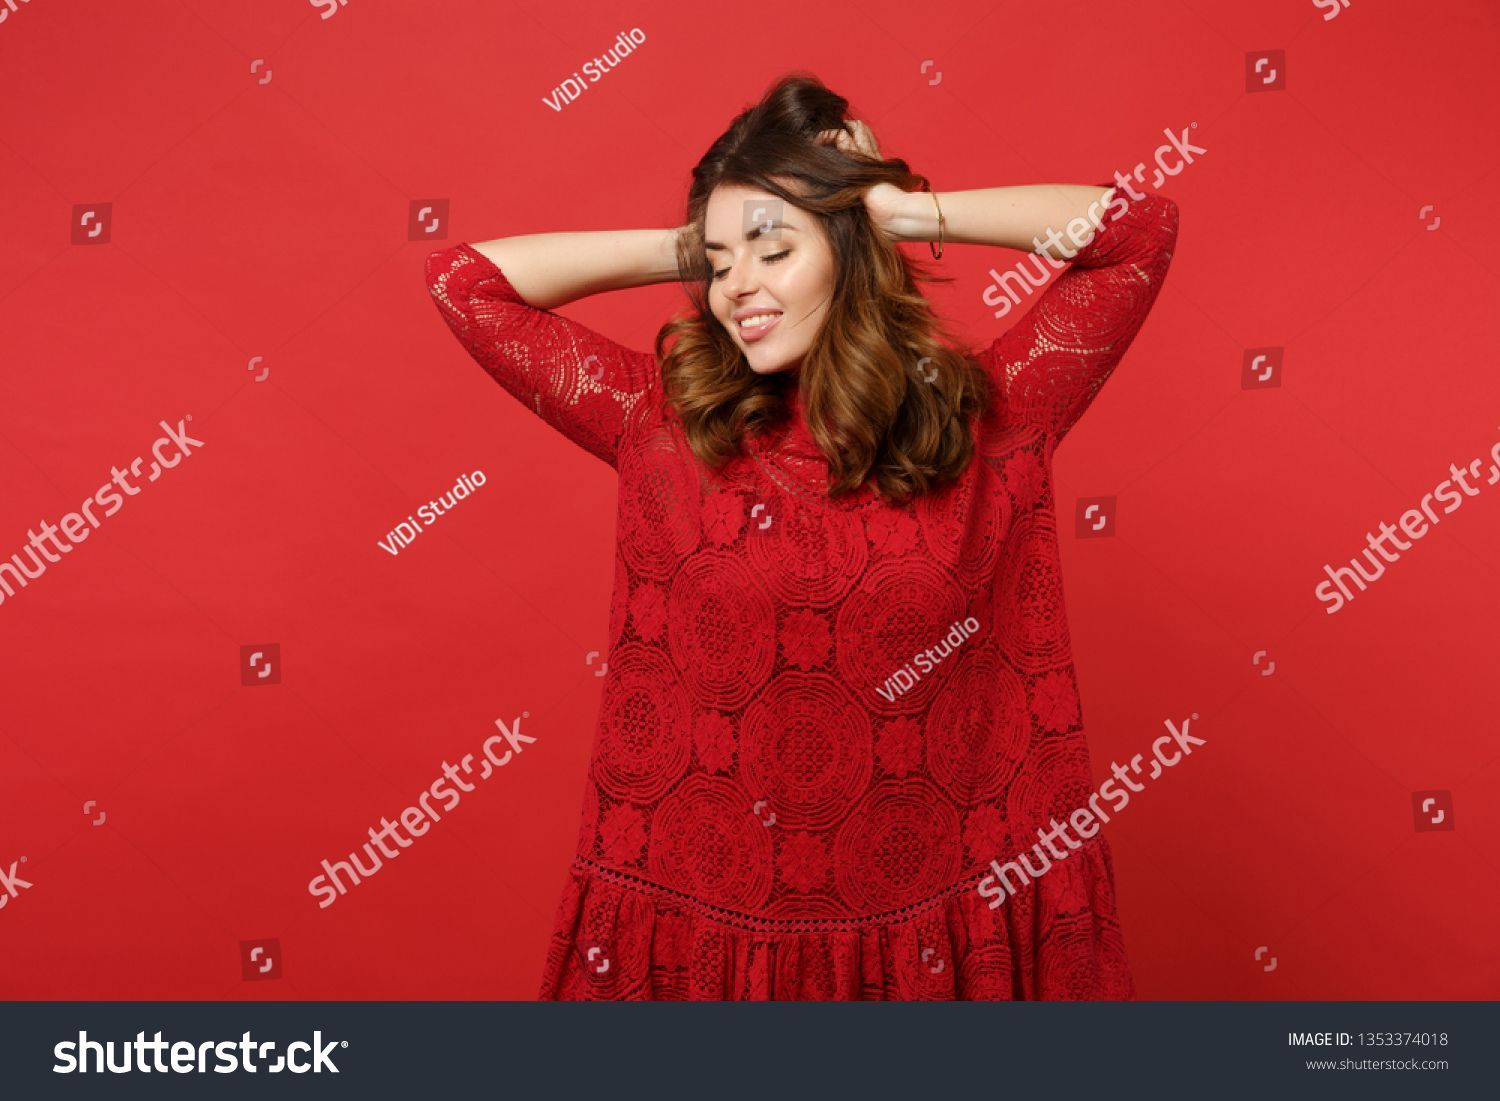 Portrait of charming young woman in lace dress keeping eyes closed putting hands on head isolated on bright red background in studio People sincere emotions lifestyle con...